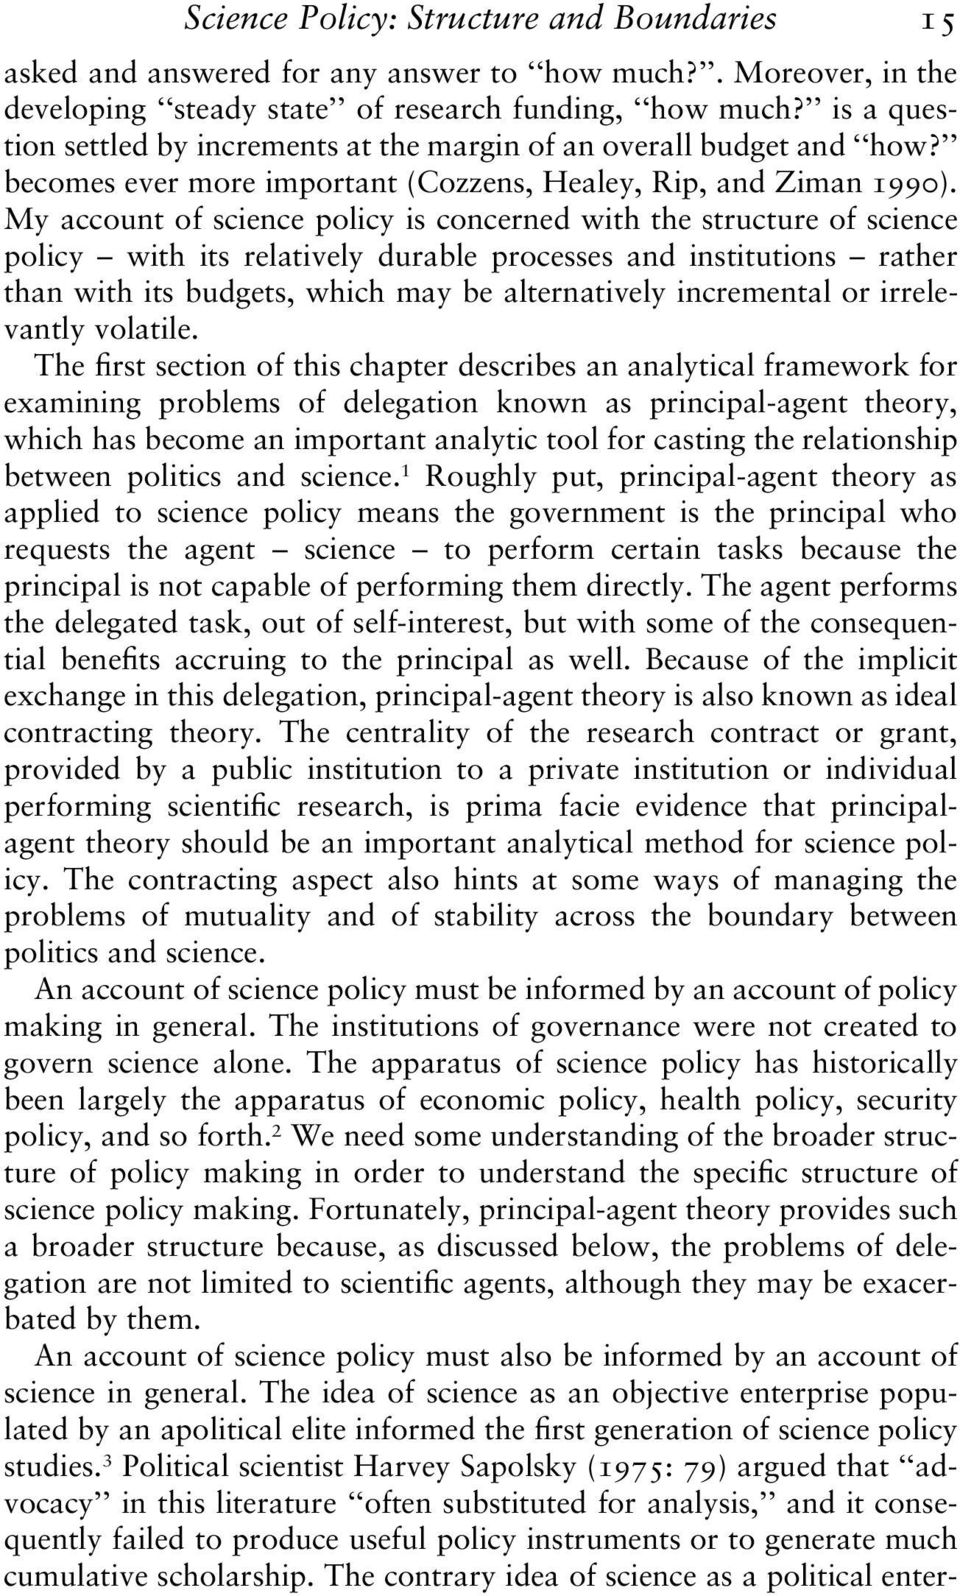 My account of science policy is concerned with the structure of science policy with its relatively durable processes and institutions rather than with its budgets, which may be alternatively